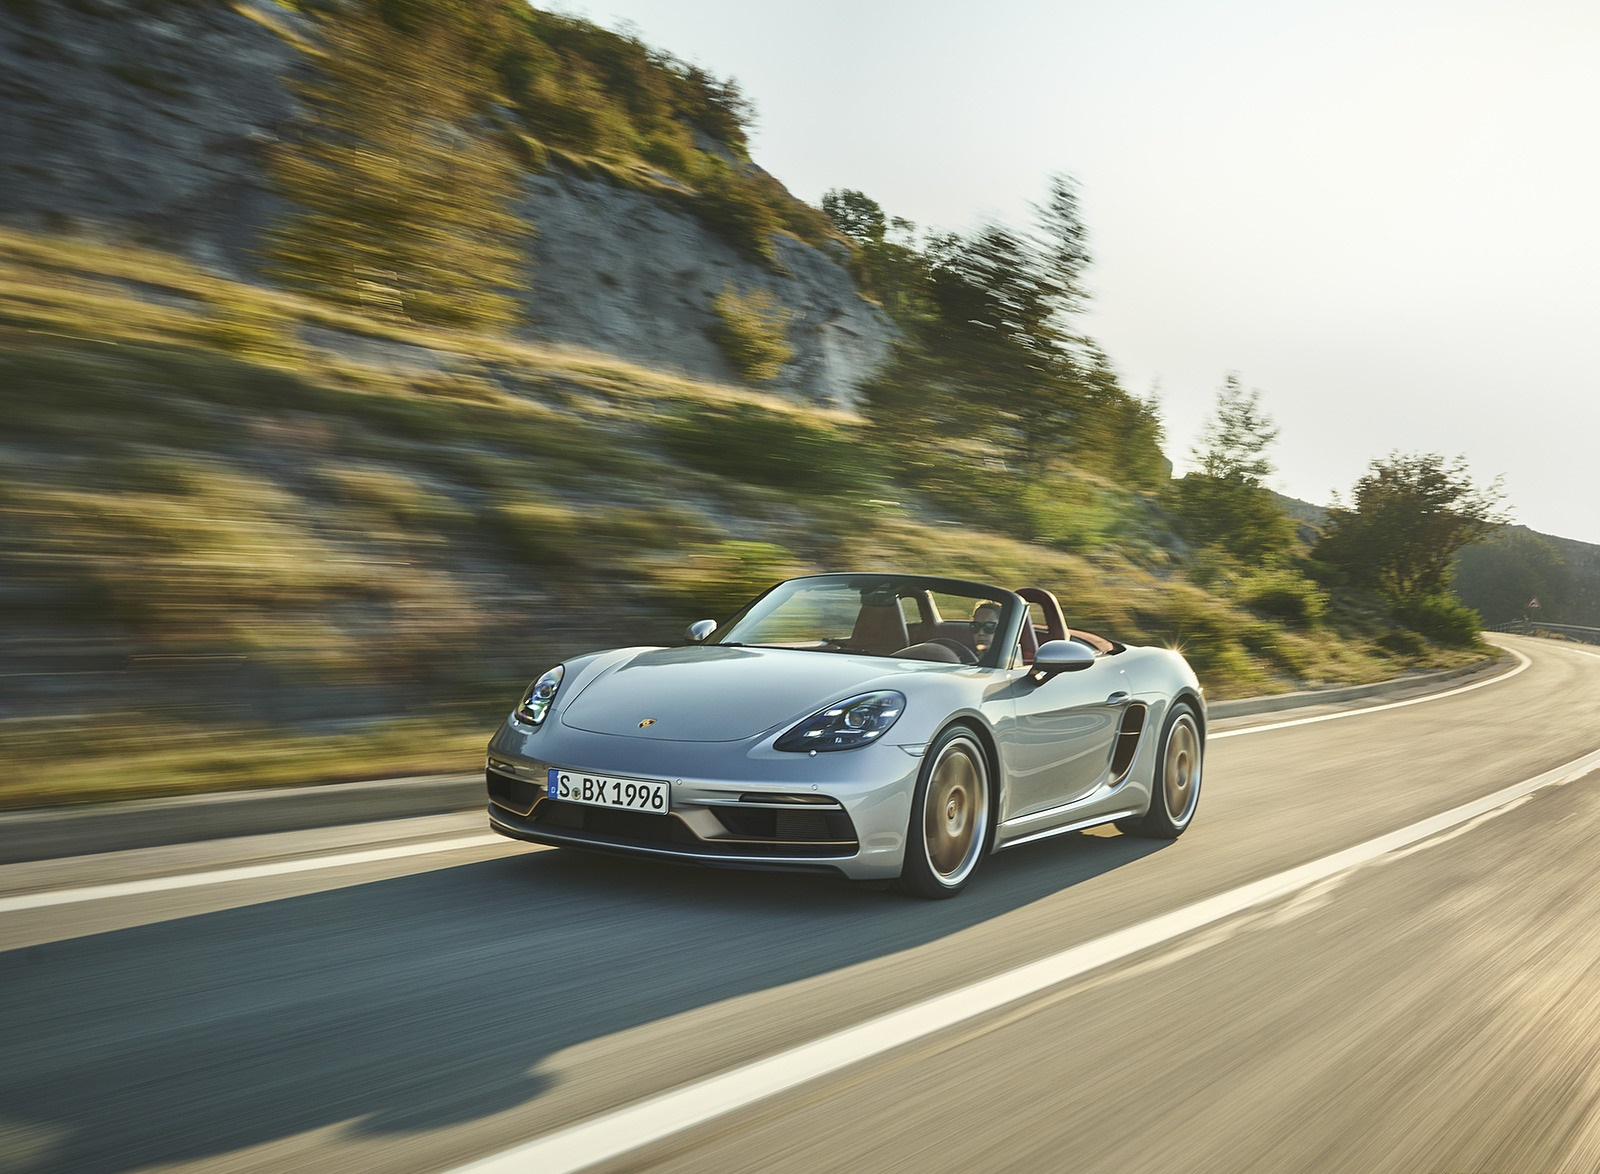 2021 Porsche 718 Boxster GTS 4.0 25 years Front Three-Quarter Wallpapers (1)